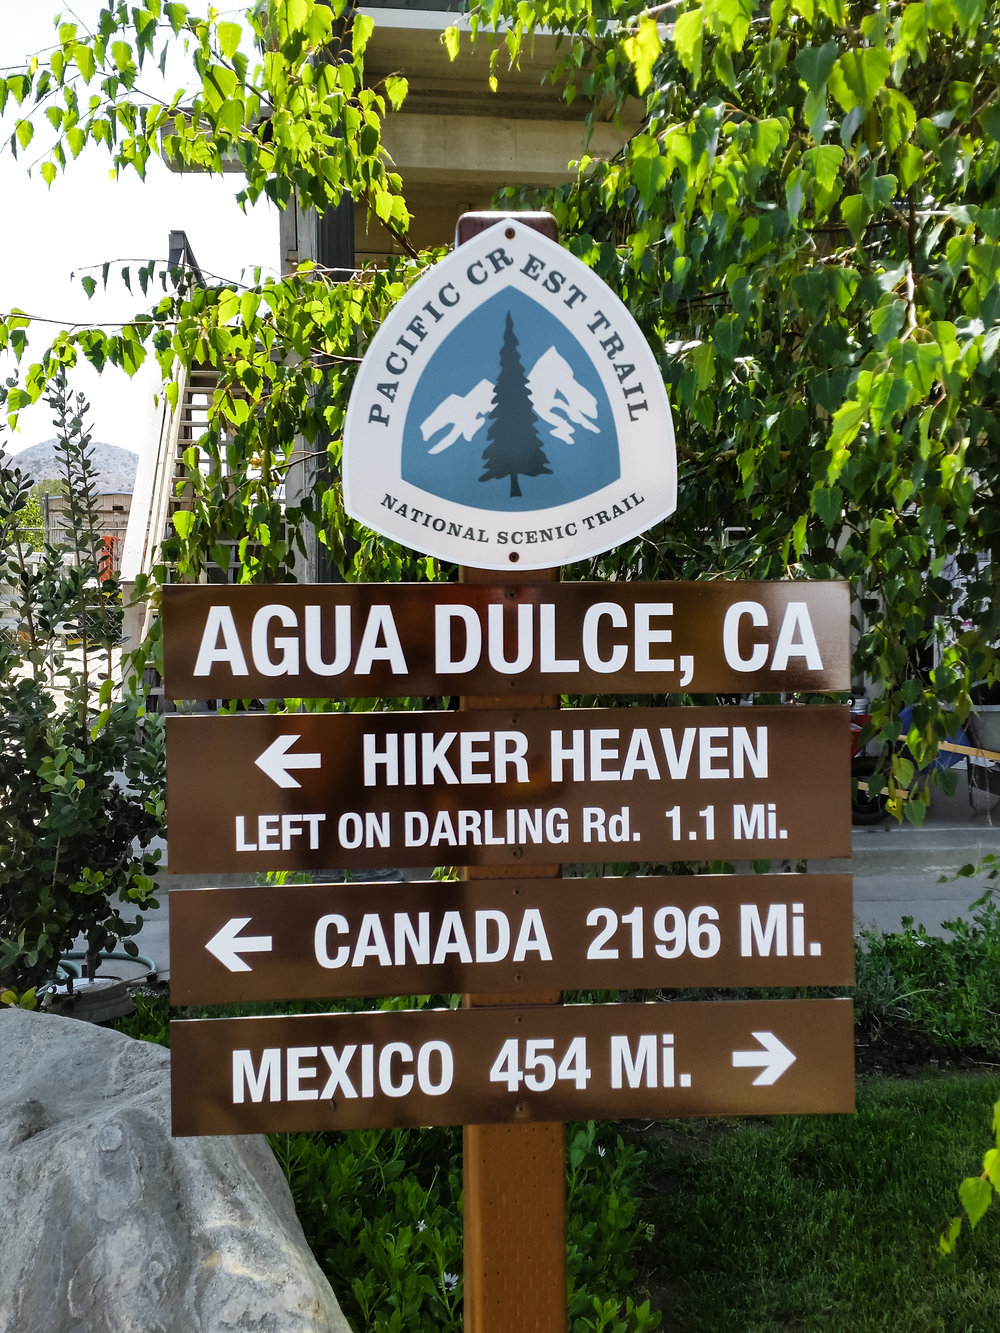 Made it to Agua Dulce and reunited with friends